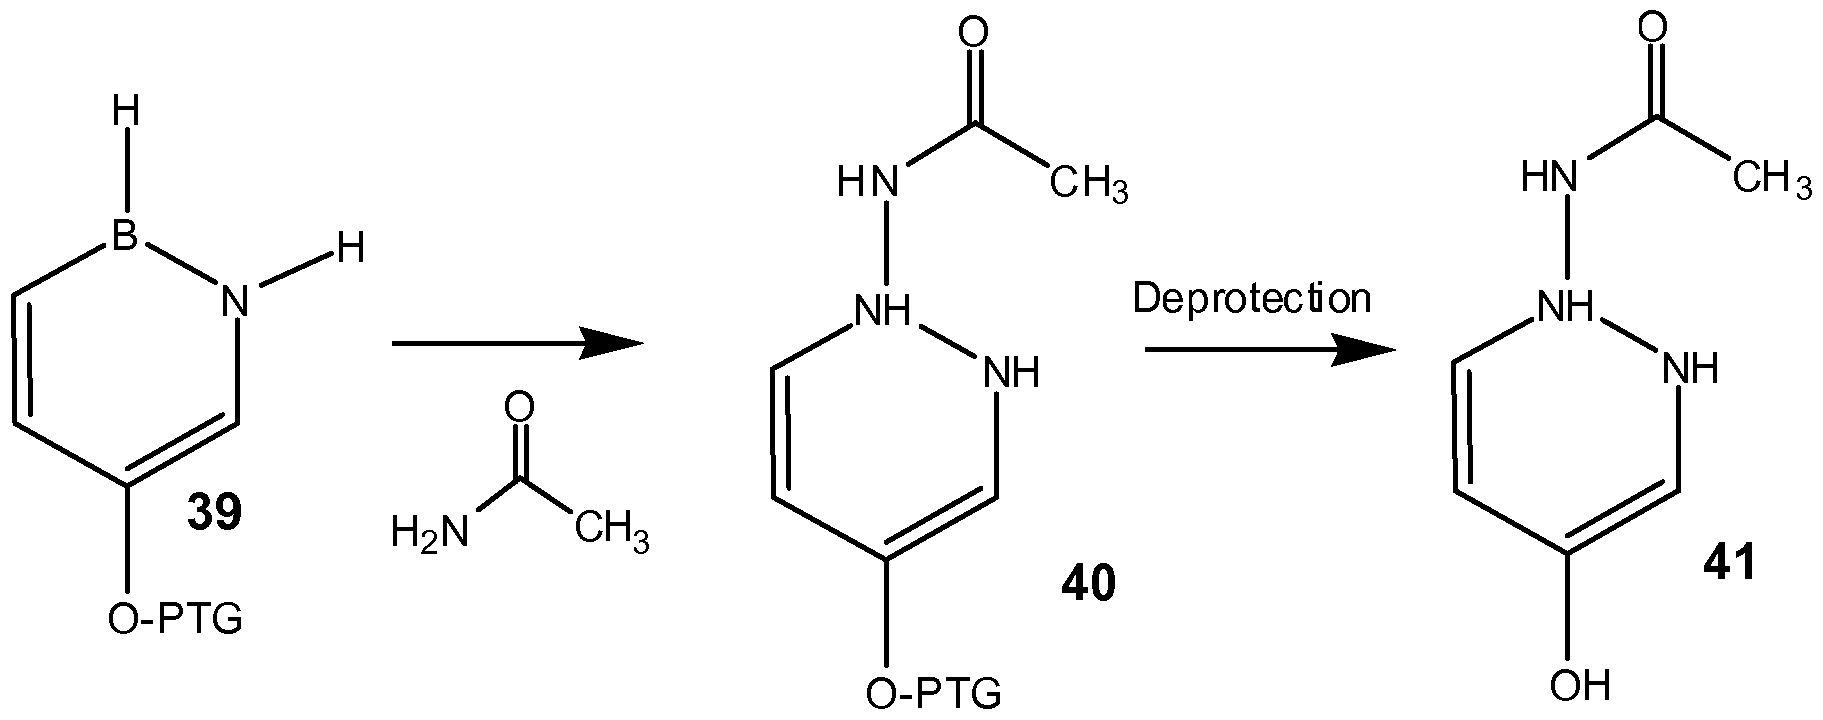 analysis of amide nmr in synthesis of acetophenetidin Acids, esters (alkyl, glycerol, waxes), alcohols and acetates, amides, and nitriles 13 c-nmr spectroscopy of fatty acids and derivatives chemical shifts (ppm) for.